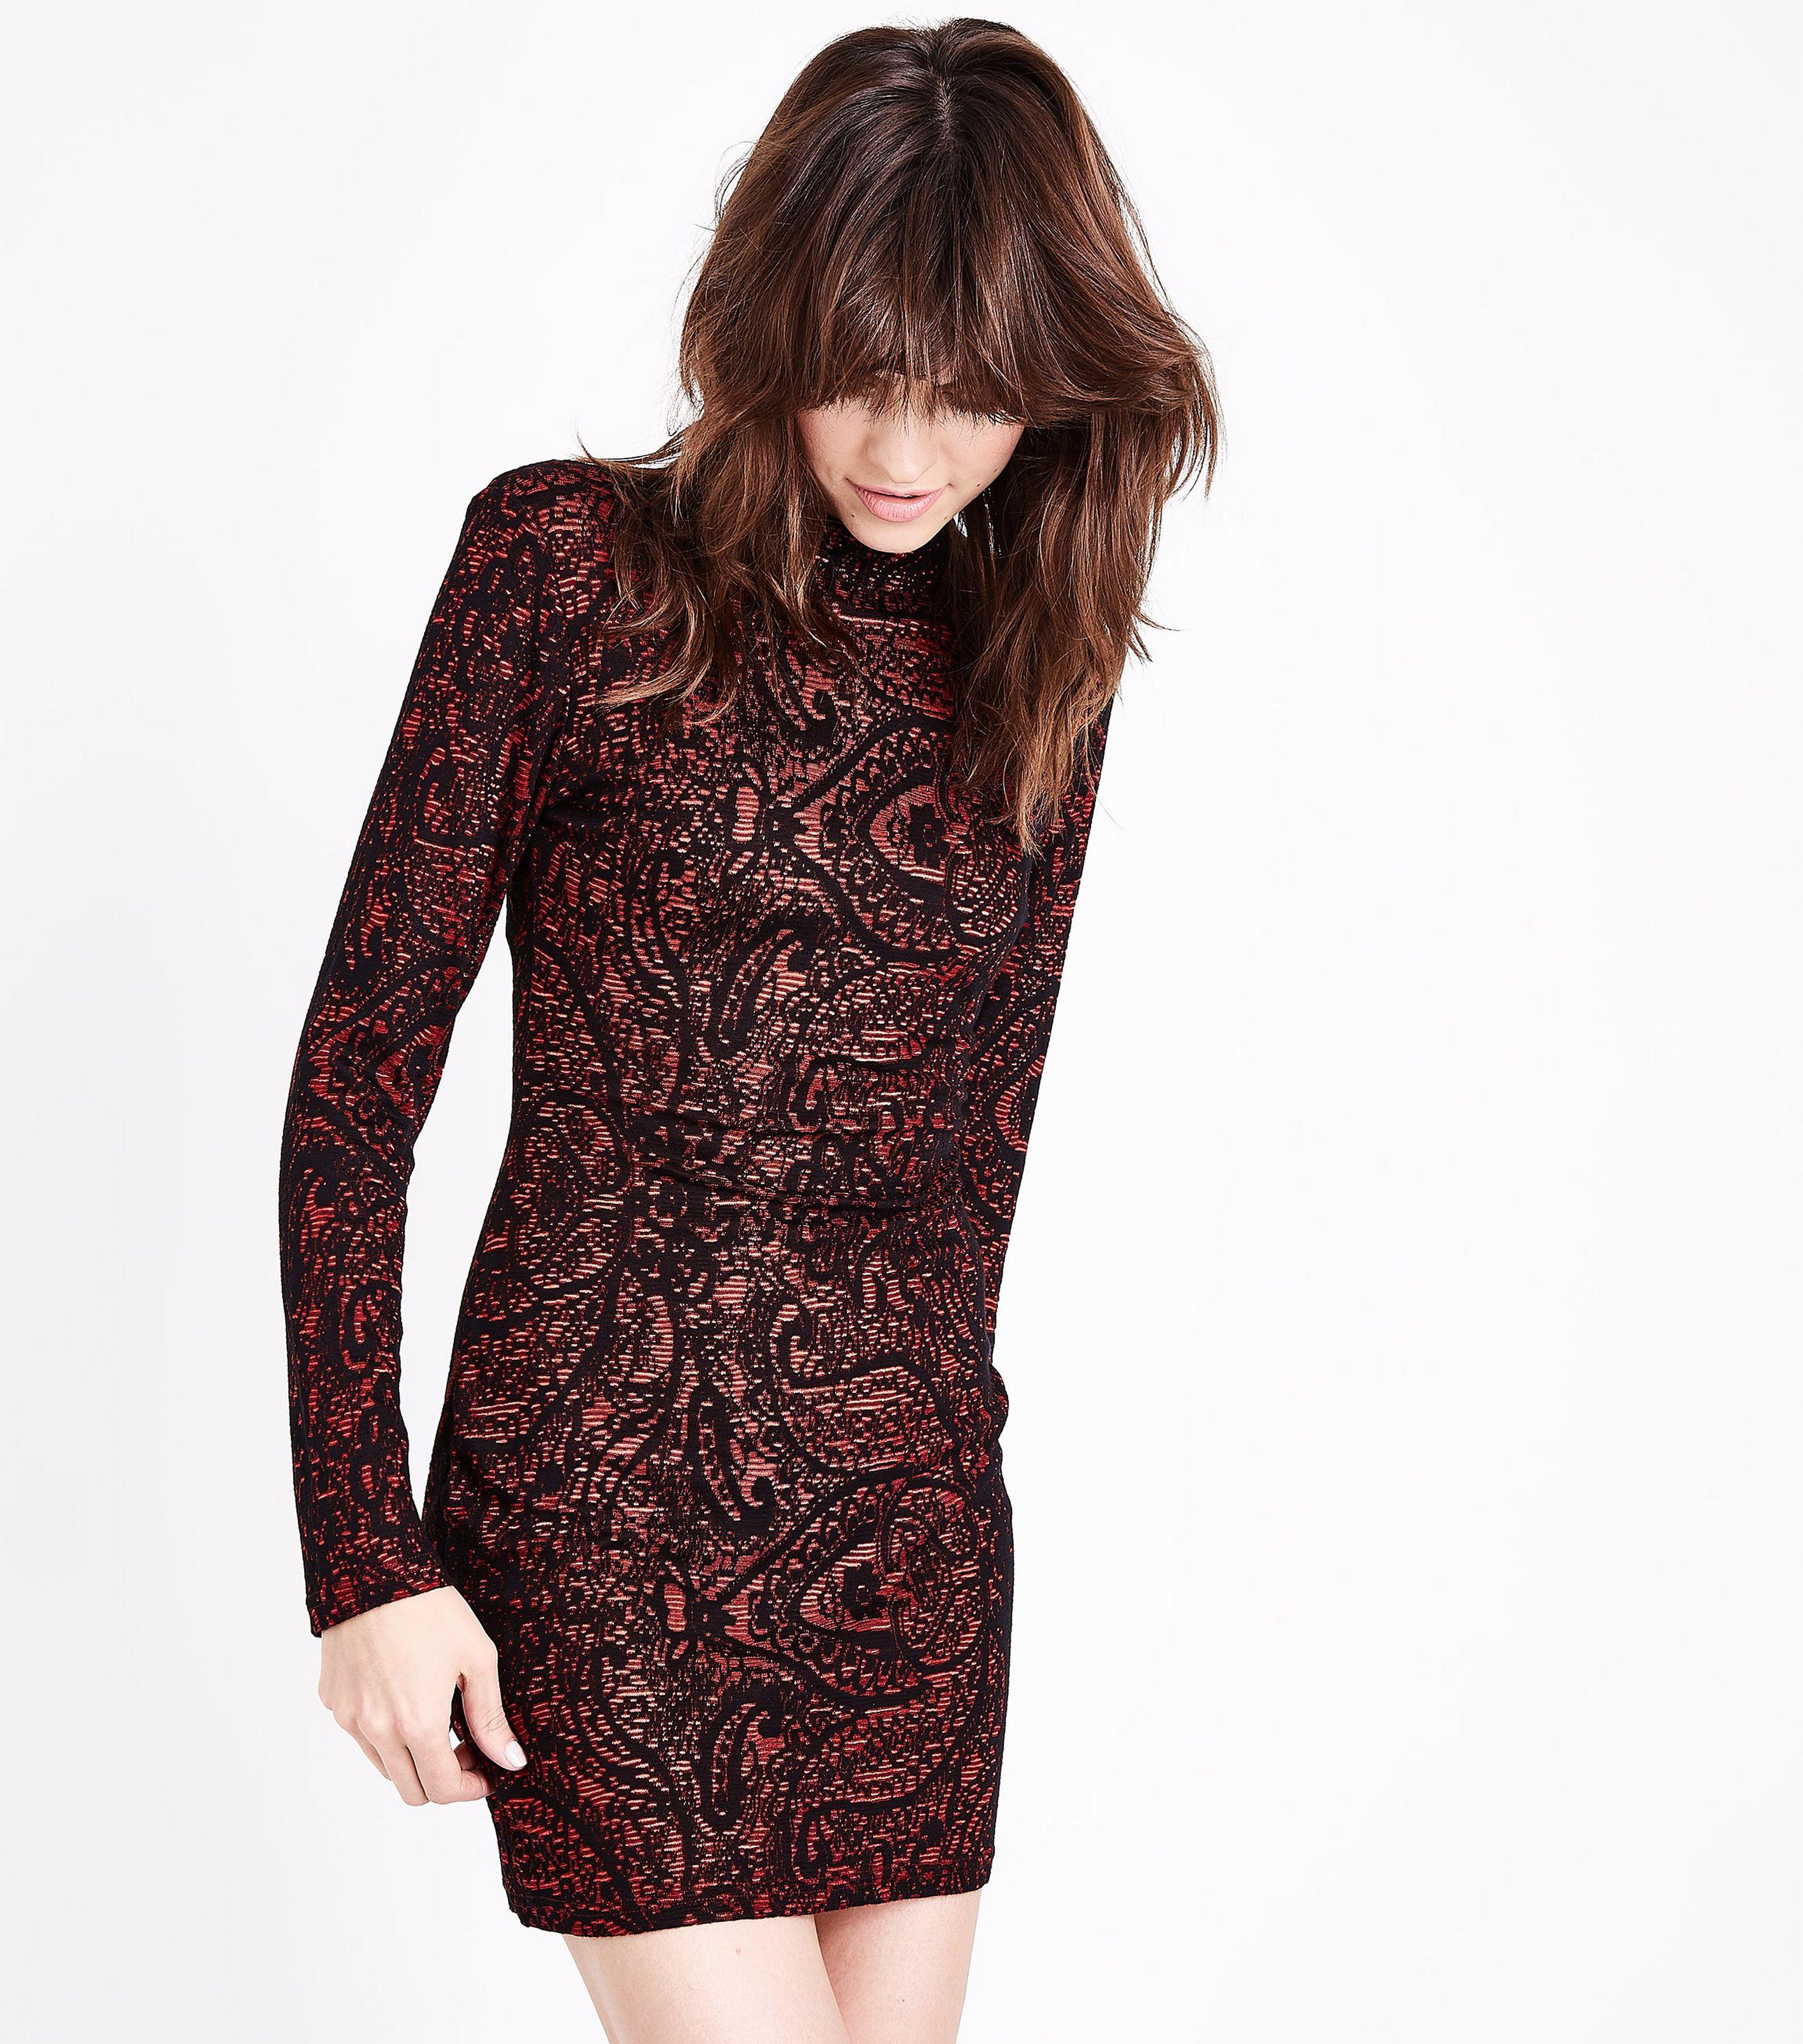 d5e5ad9fab Gallery. Previously sold at  New Look · Women s Bodycon Dresses ...